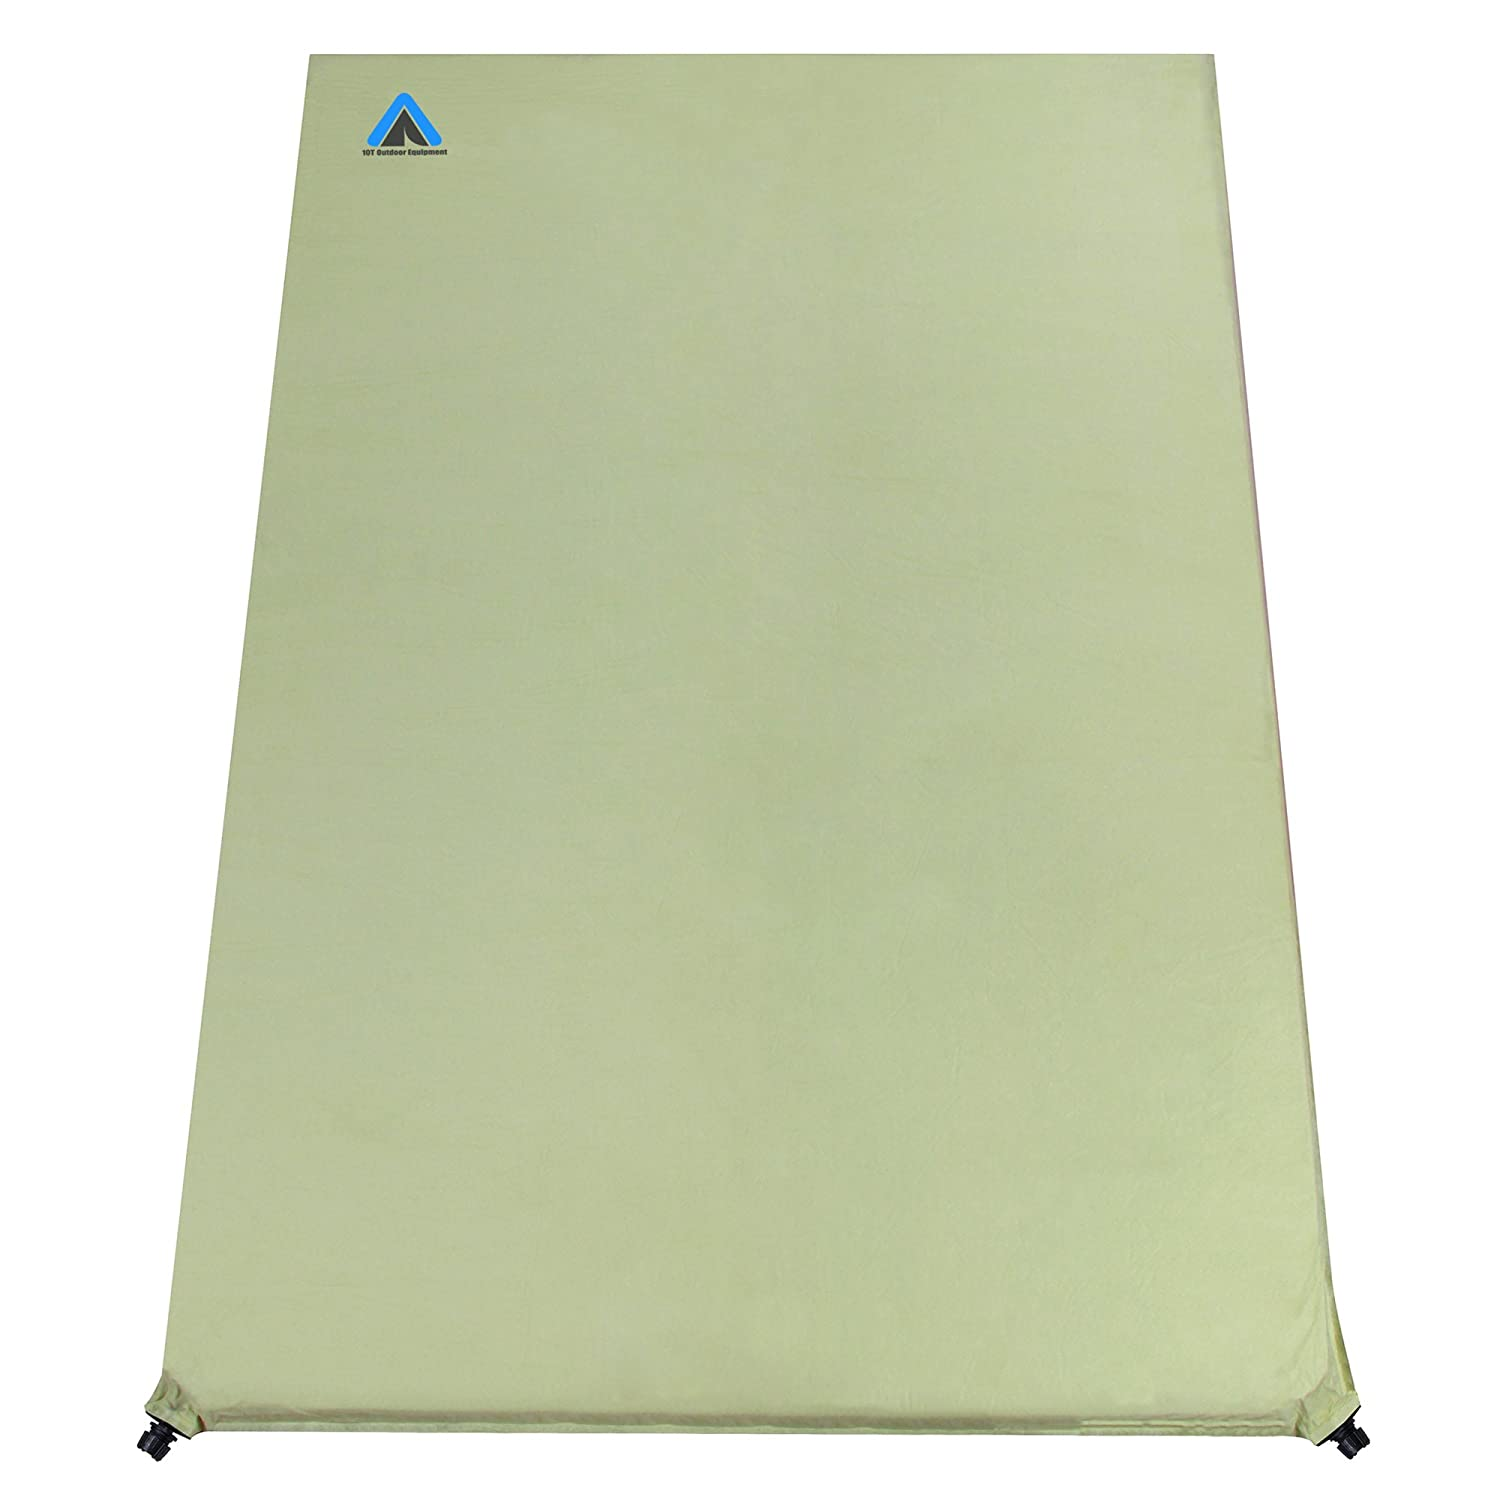 10T Outdoor Equipment Bea 600 Duo Selbstaufblasende Isomatte, Grün, 200 x 130 x 6 cm